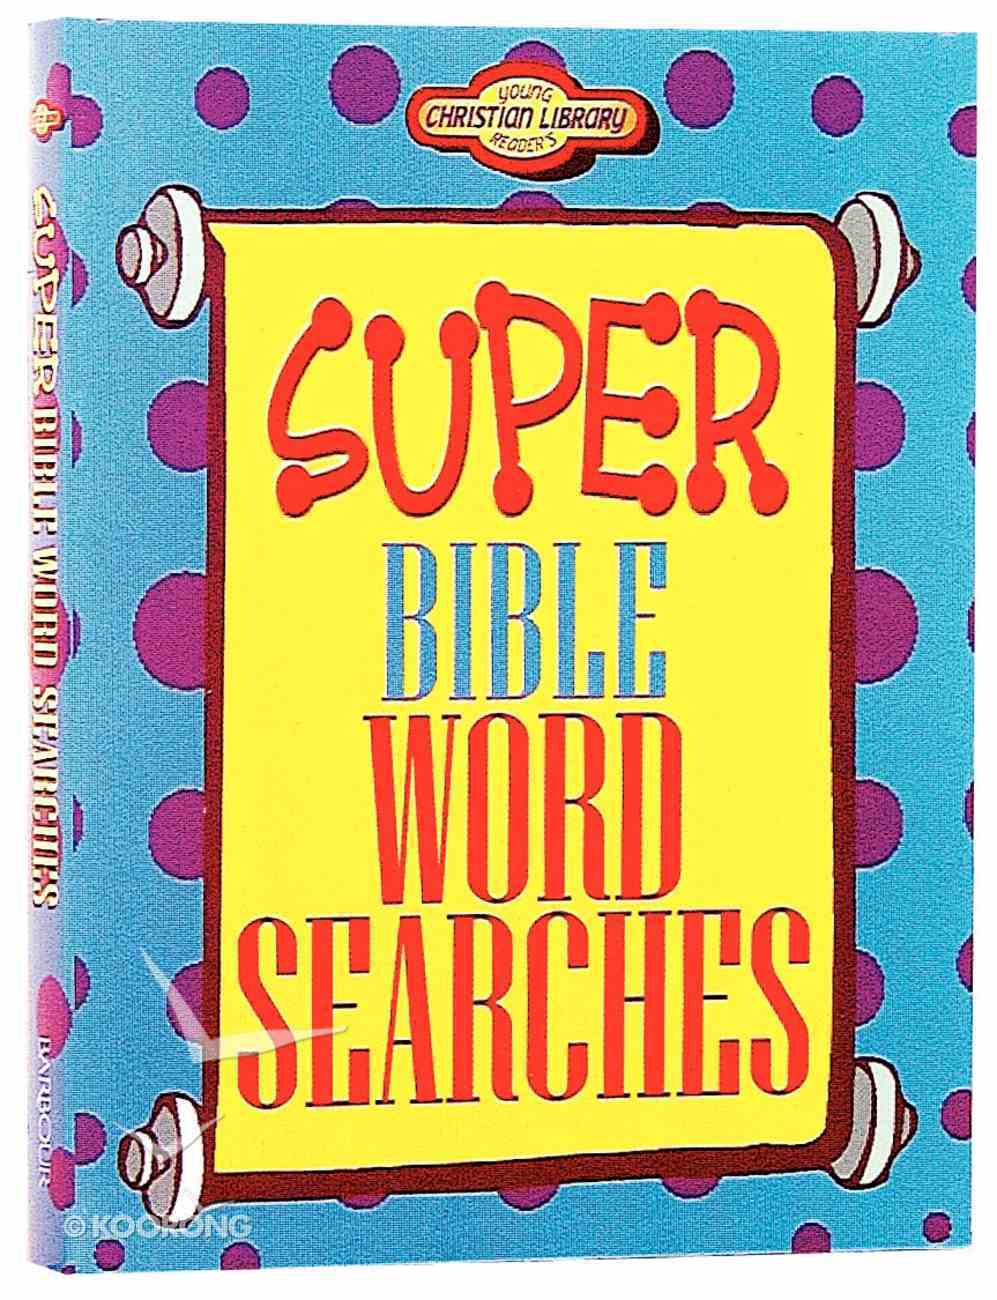 Super Bible Word Searches (Young Readers Series) Paperback